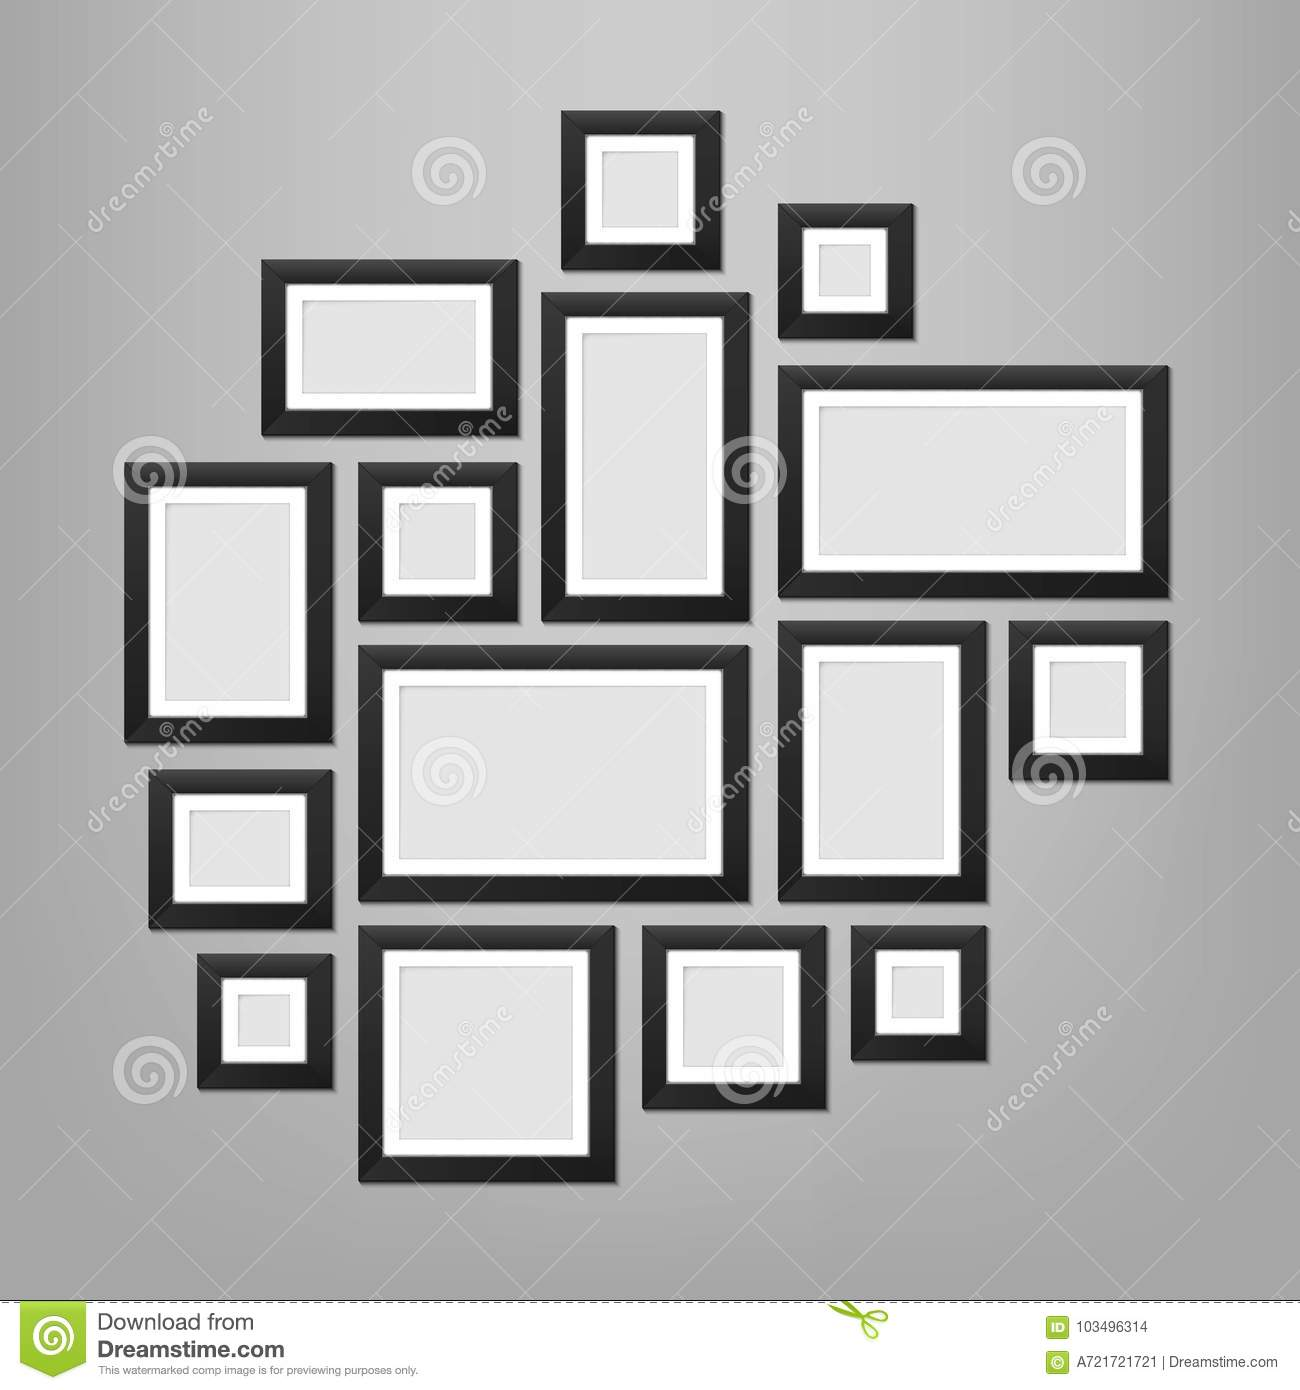 Creative vector illustration of wall picture frames template isolated on background. Art design blank photo. Abstract concept grap